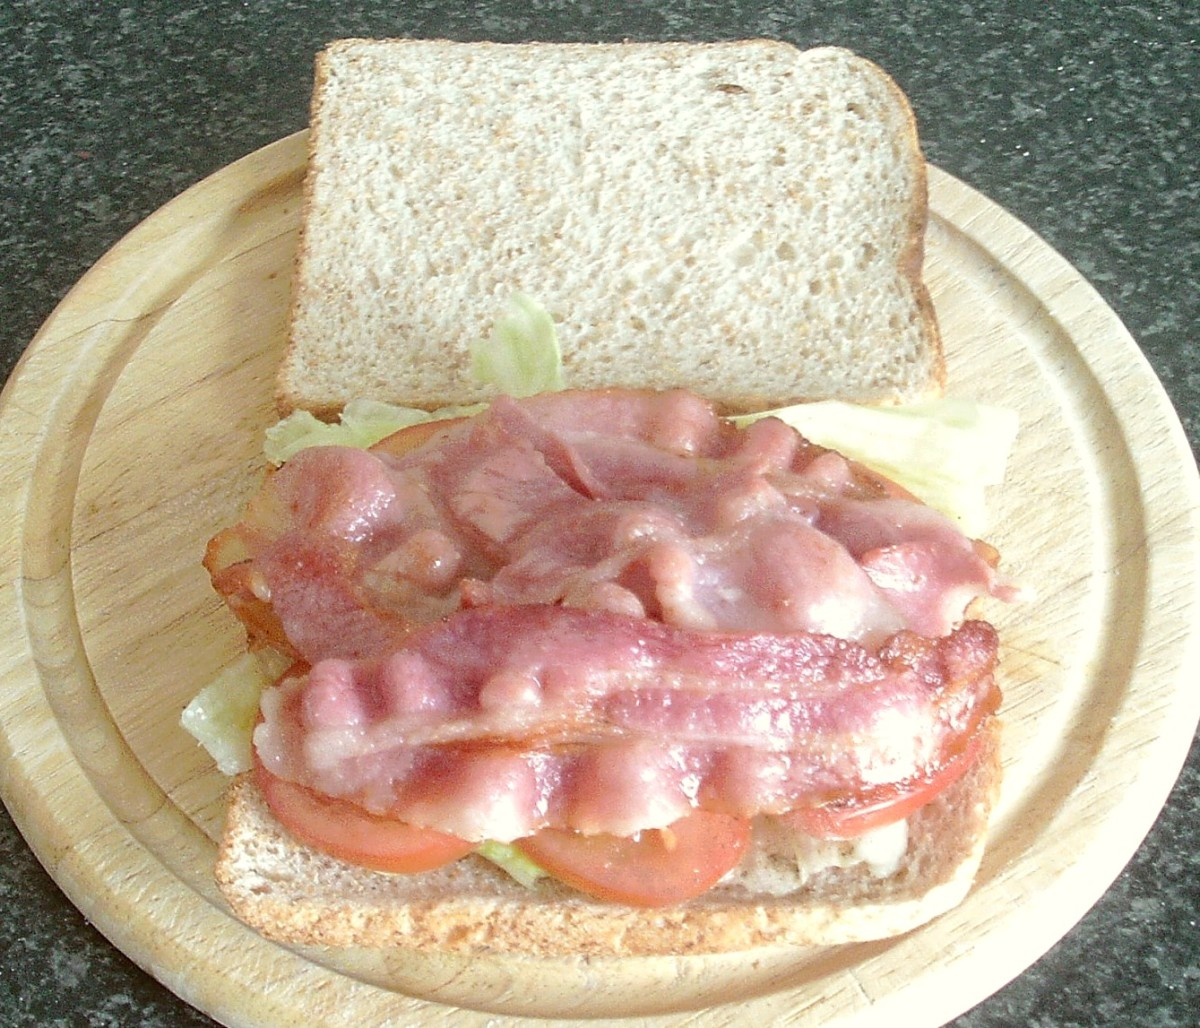 Bacon is laid on top of lettuce and tomato